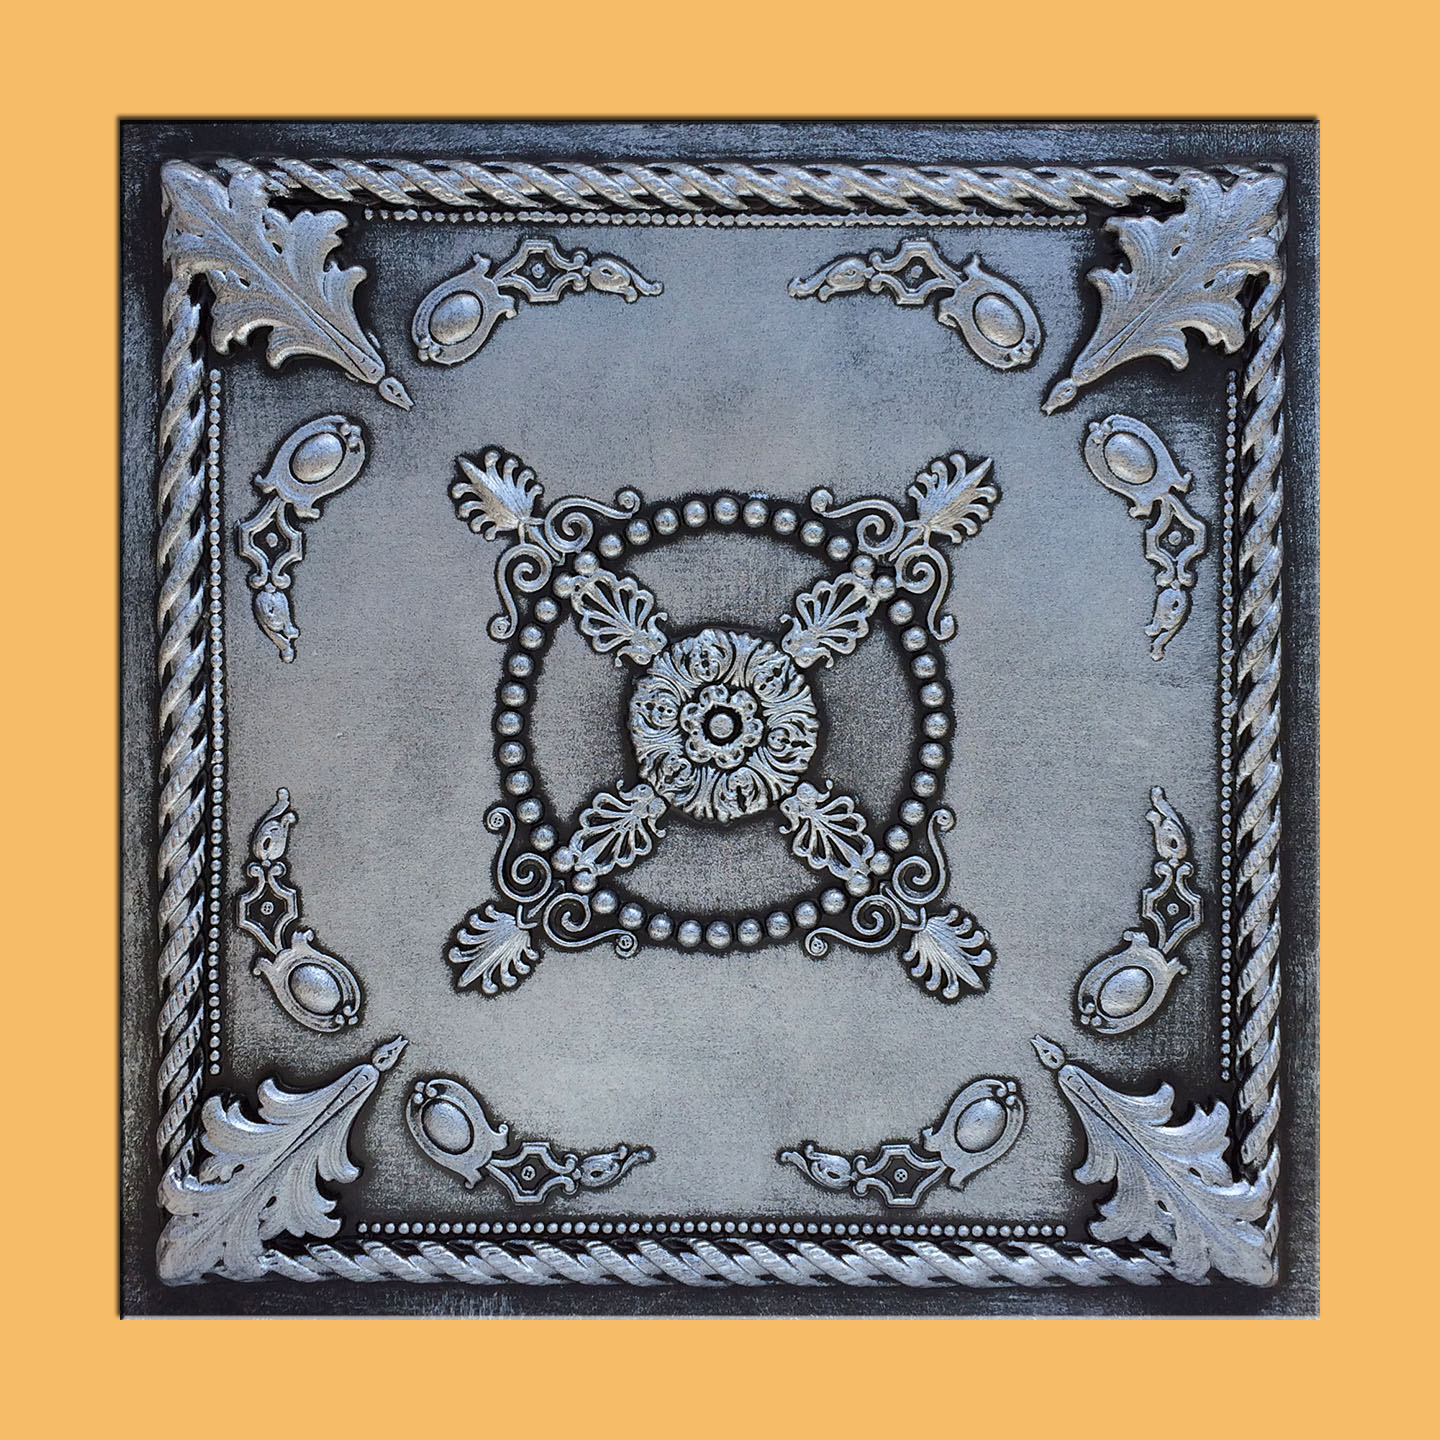 Jewel Antique Silver Black PVC Ceiling Tiles for Drop in Grid System (10 pack)